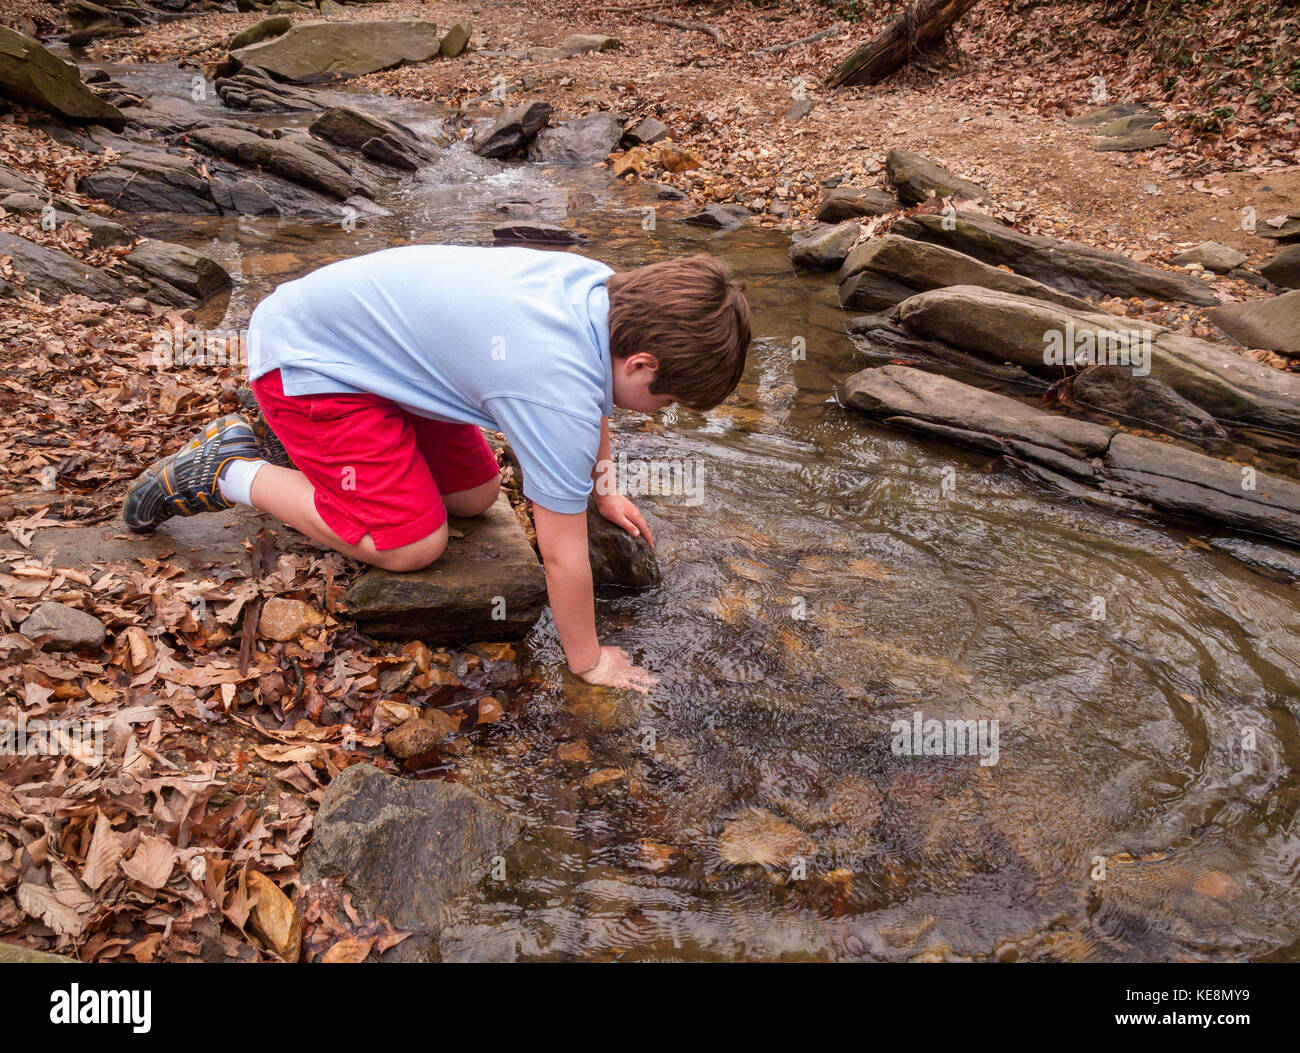 VIRGINIA, USA - Autistic boy, 11 years old, touches water in stream. - Stock Image